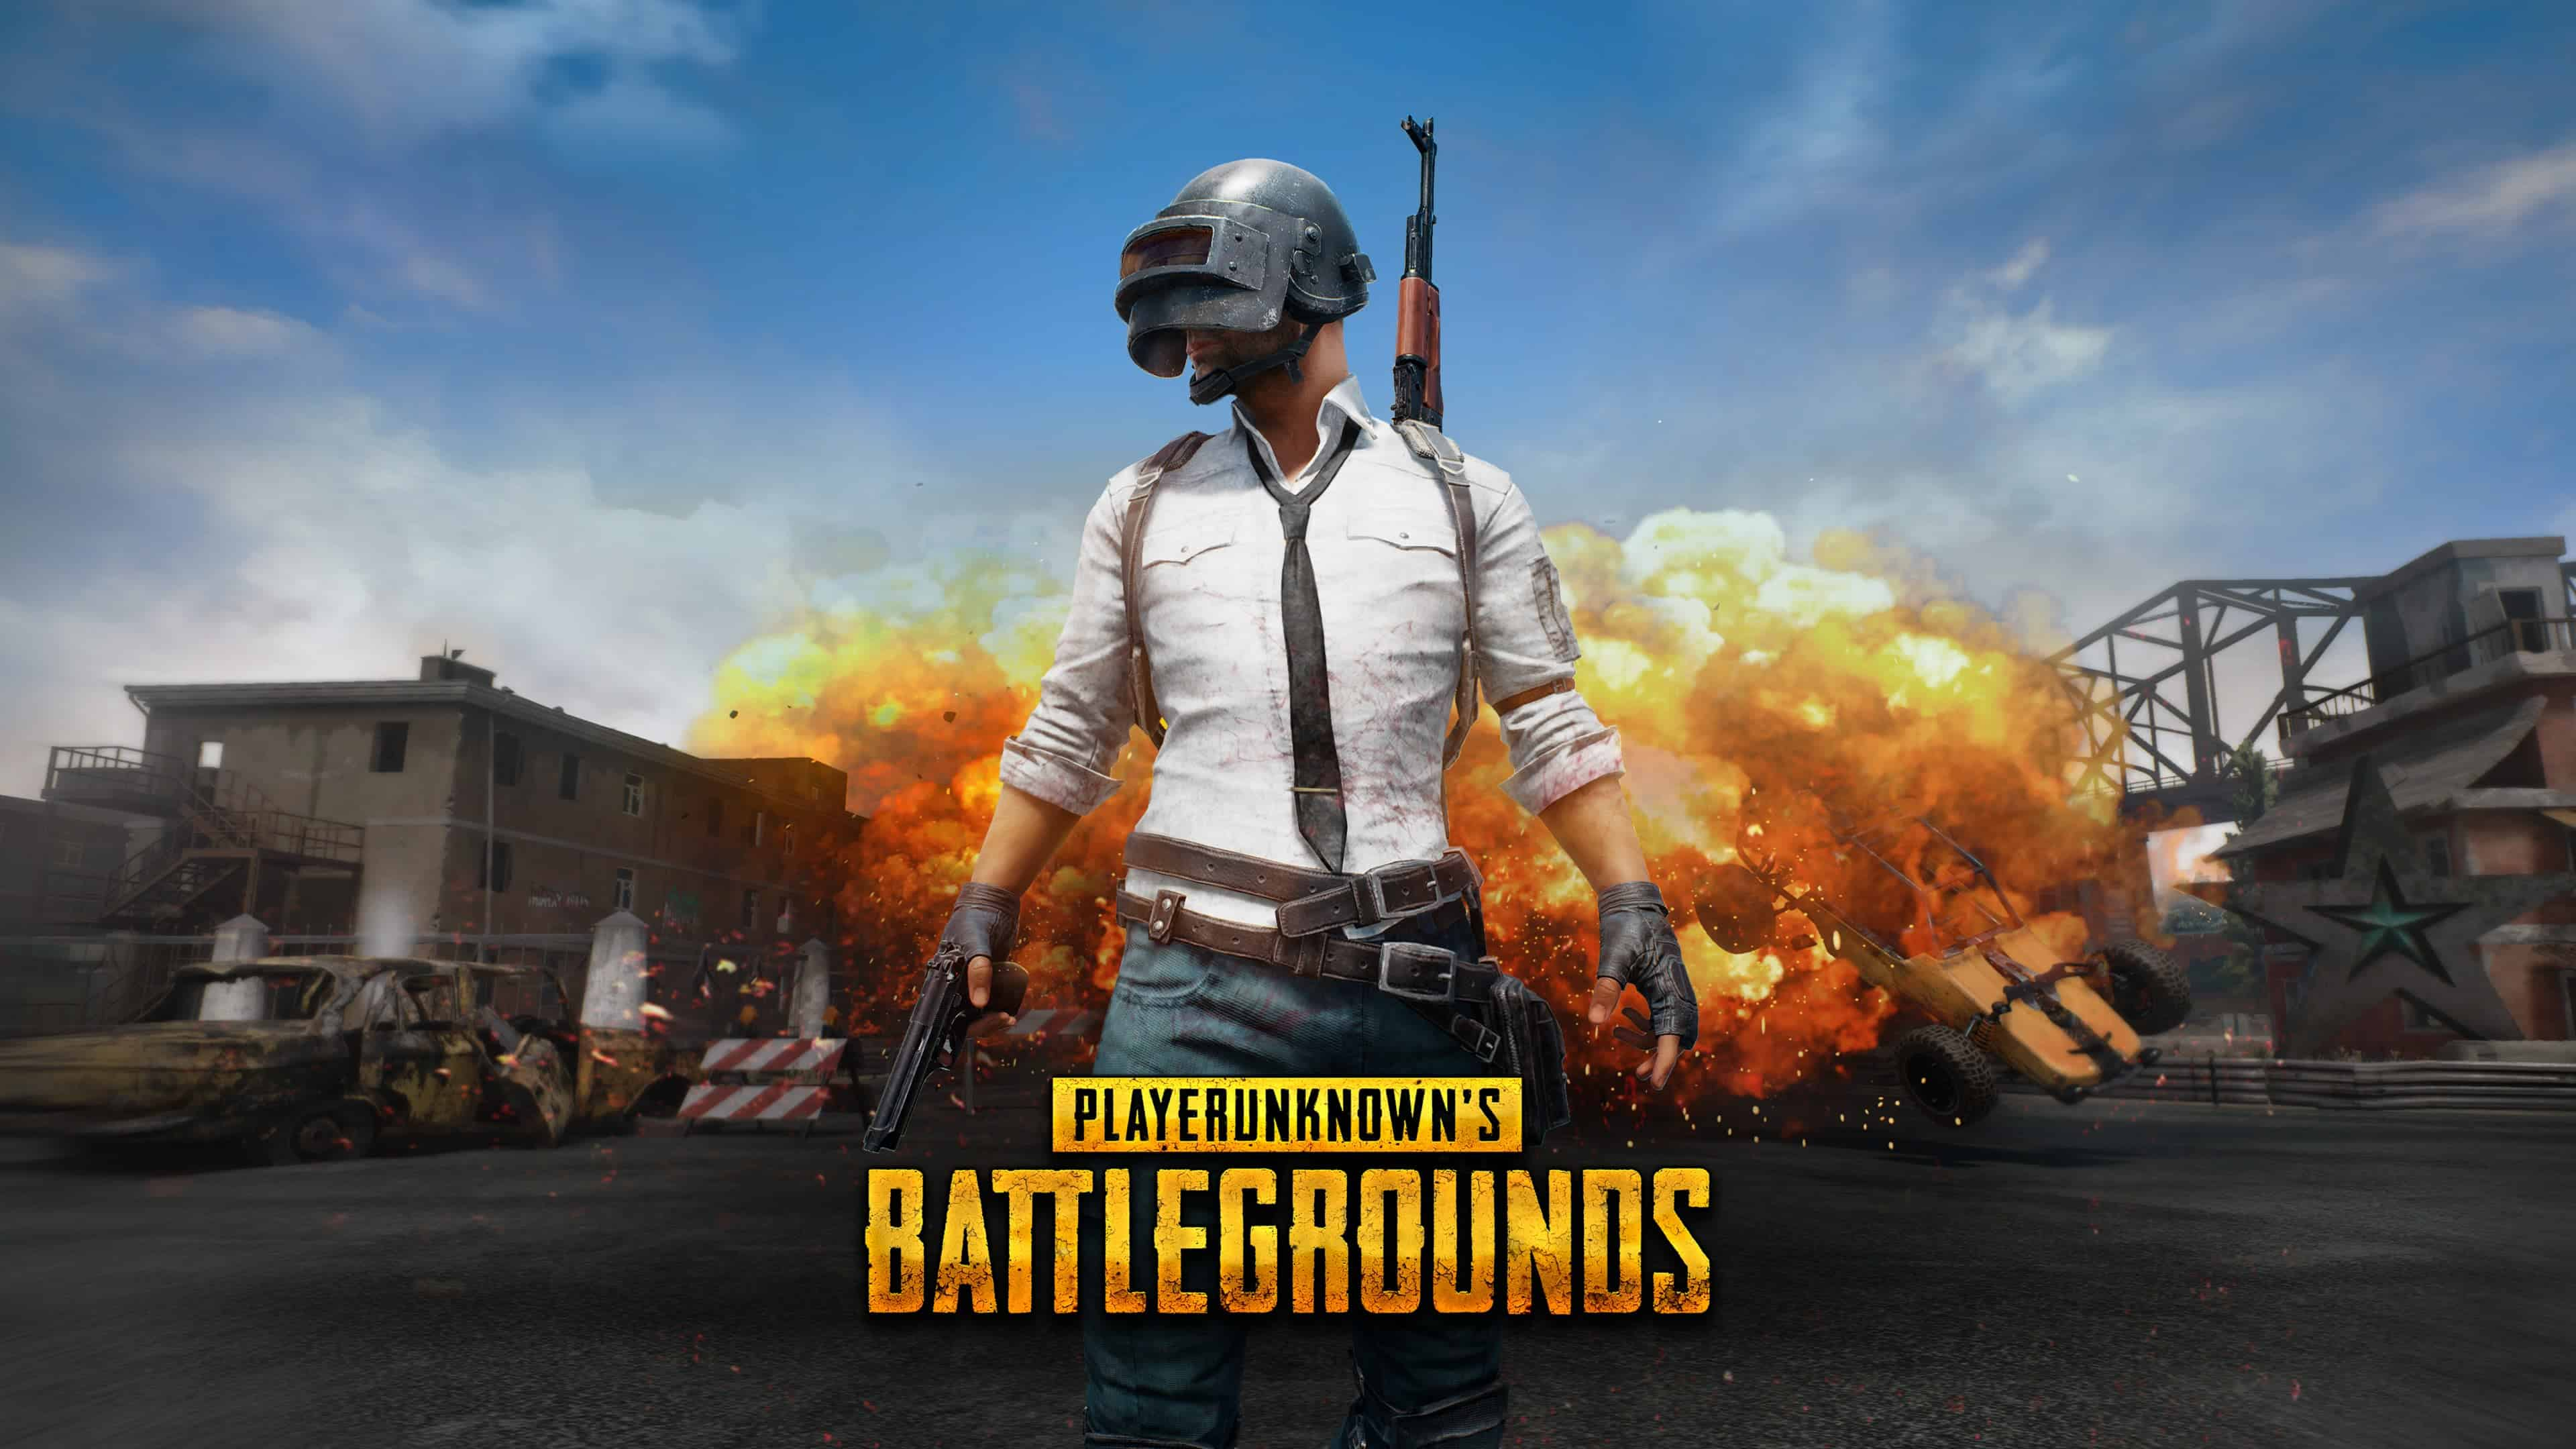 Pubg Lite Wallpaper Hd: PUBG Player Unknown Battlegrounds Cover UHD 4K Wallpaper